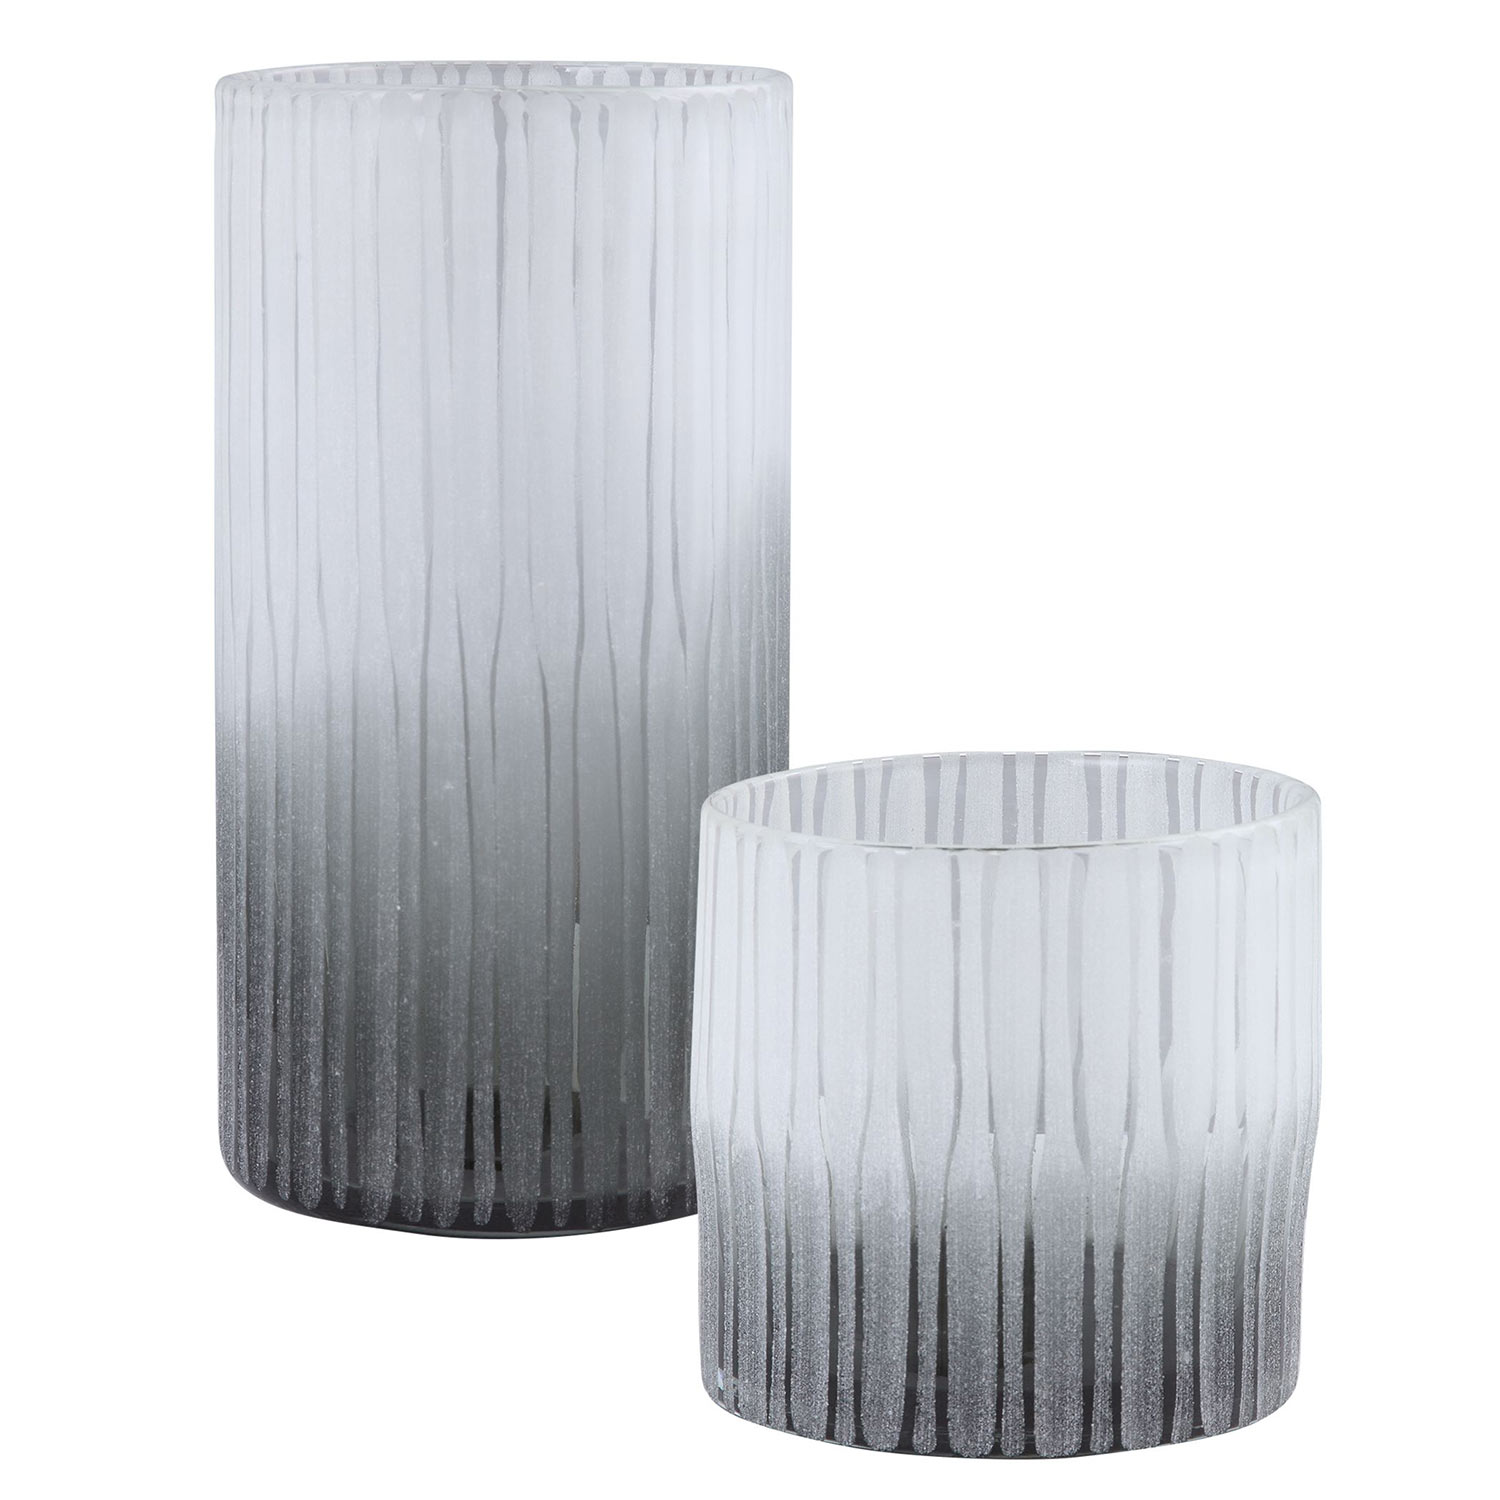 Uttermost Como Etched Glass Vases - Set of 2